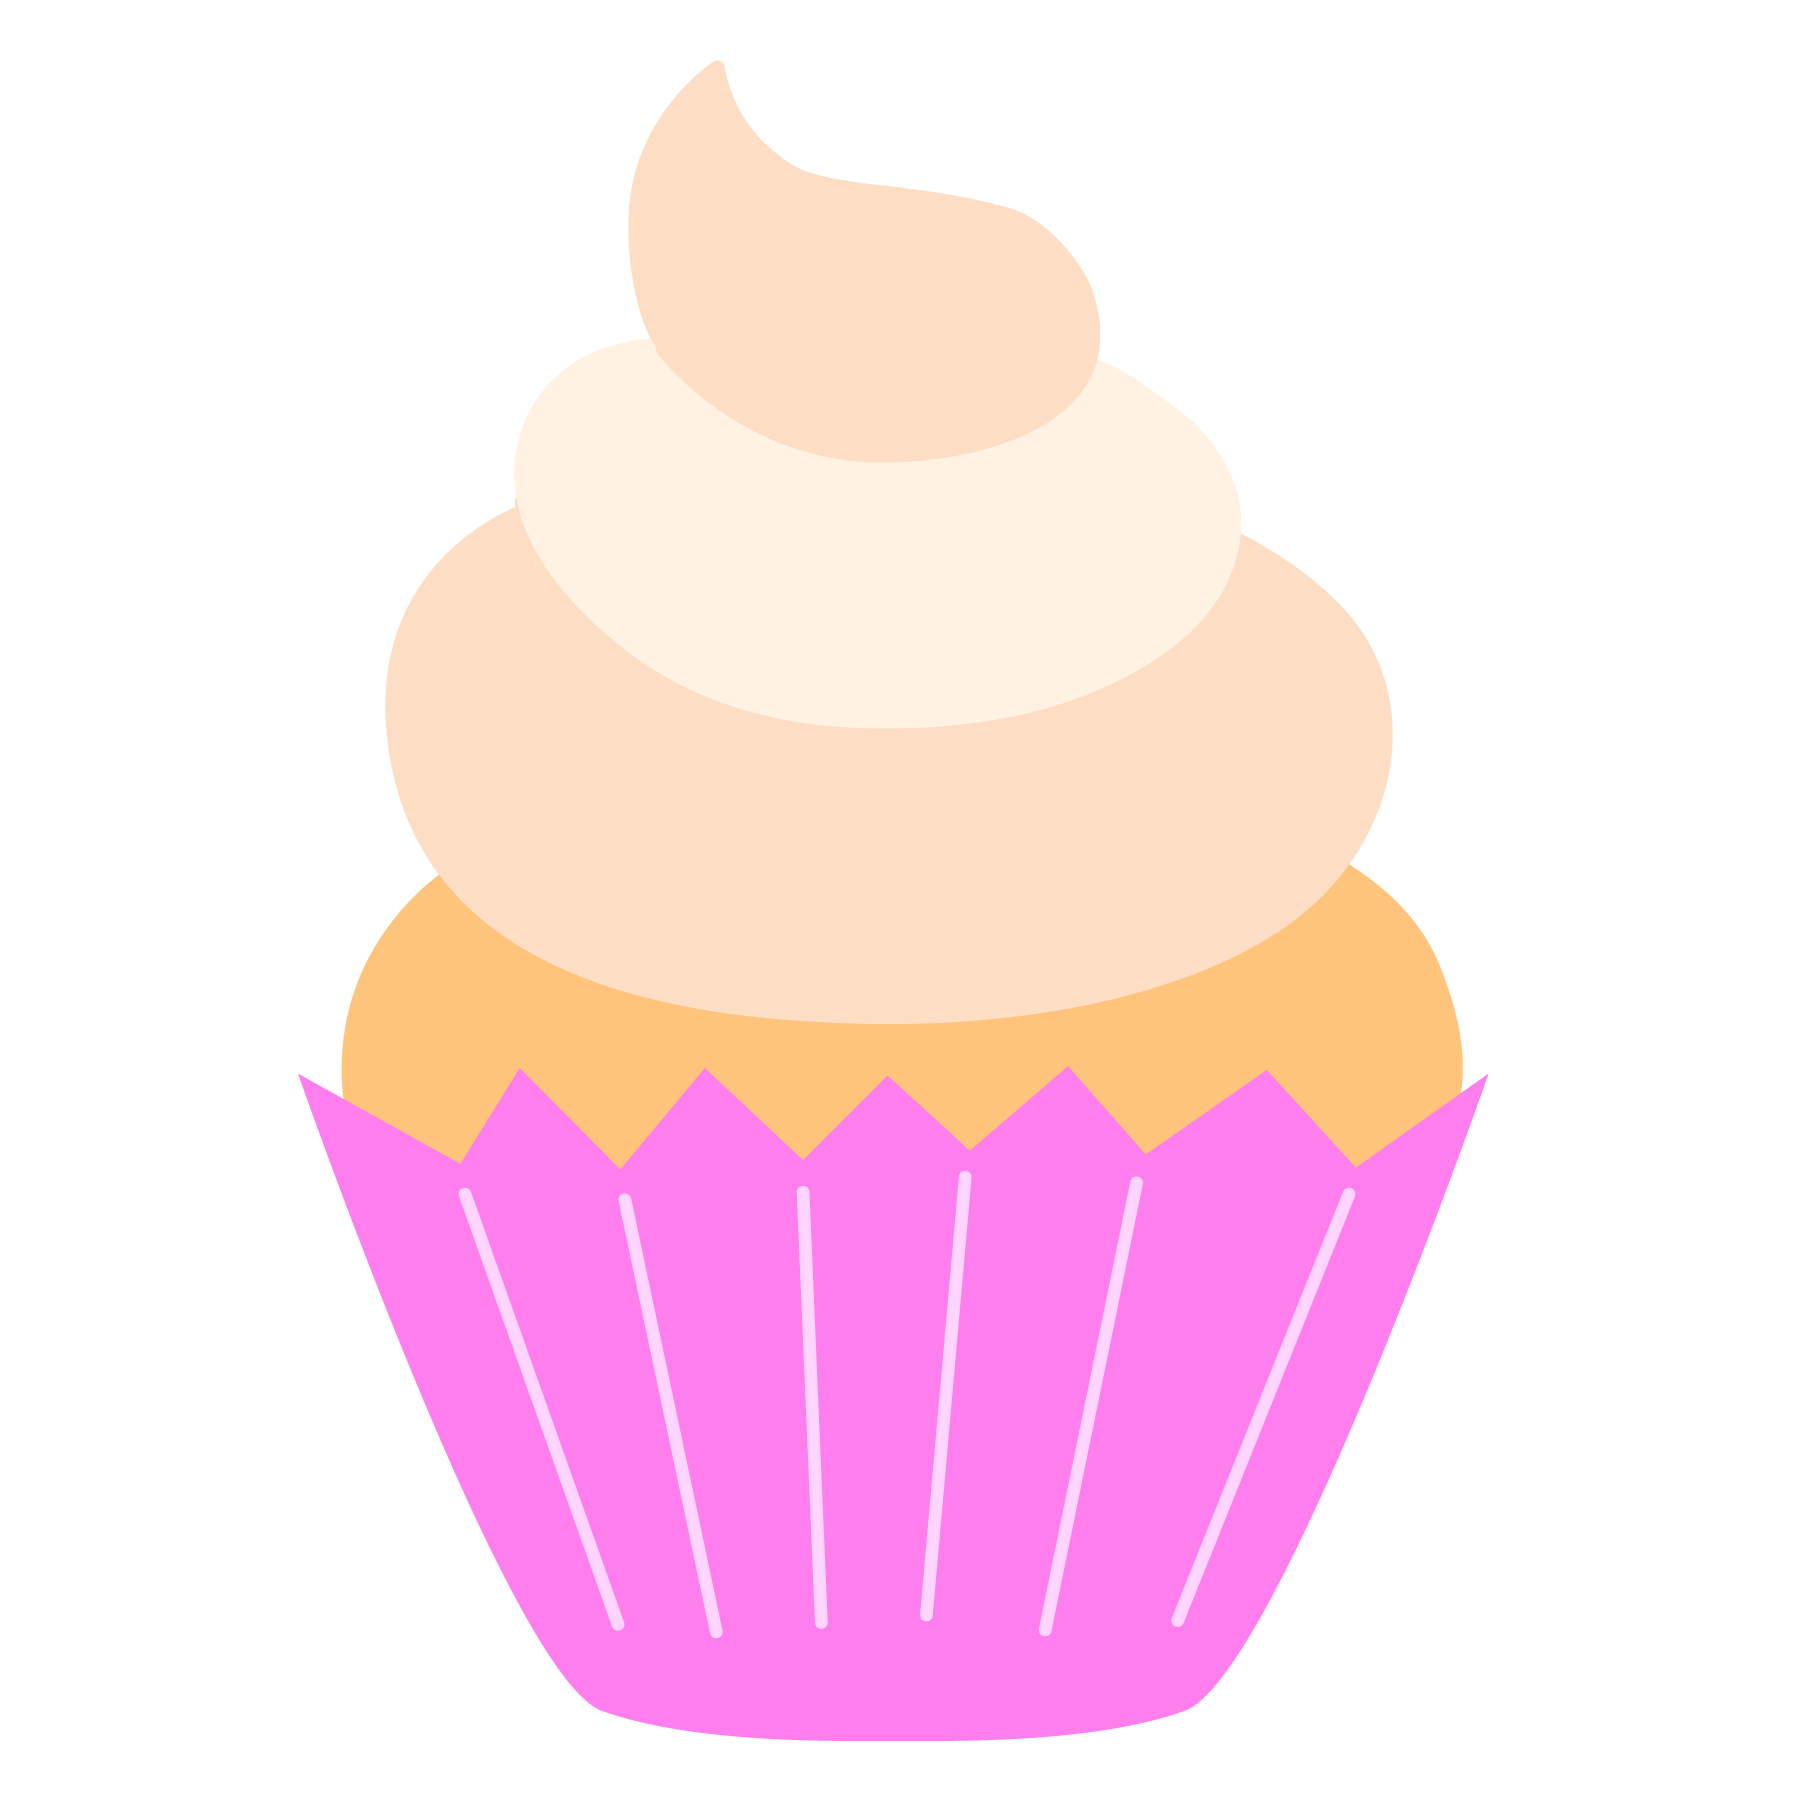 1800x1800 Tips For Hosting A Successful Bake Sale